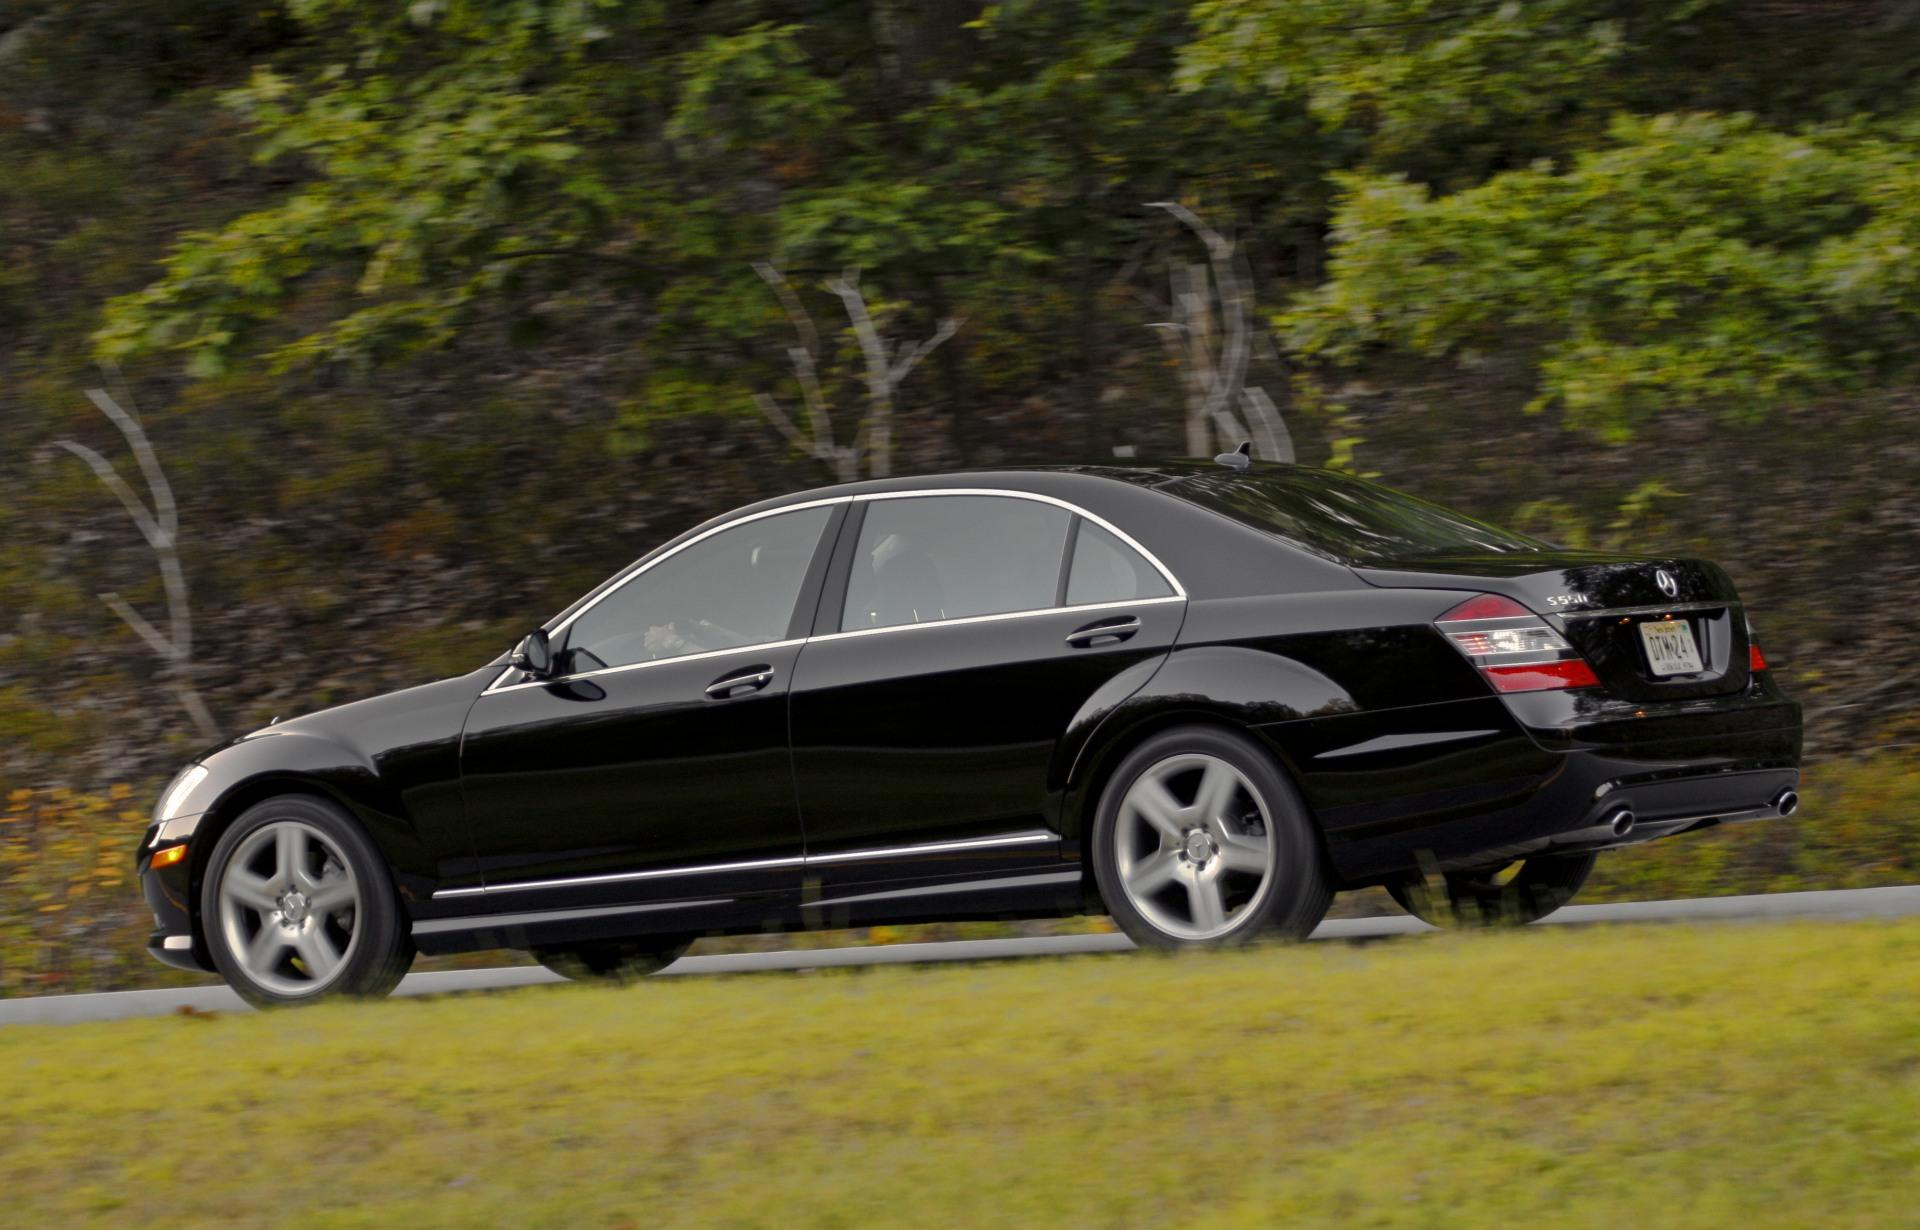 2009 mercedes benz s class image photo 15 of 38 for 2009 mercedes benz s550 price